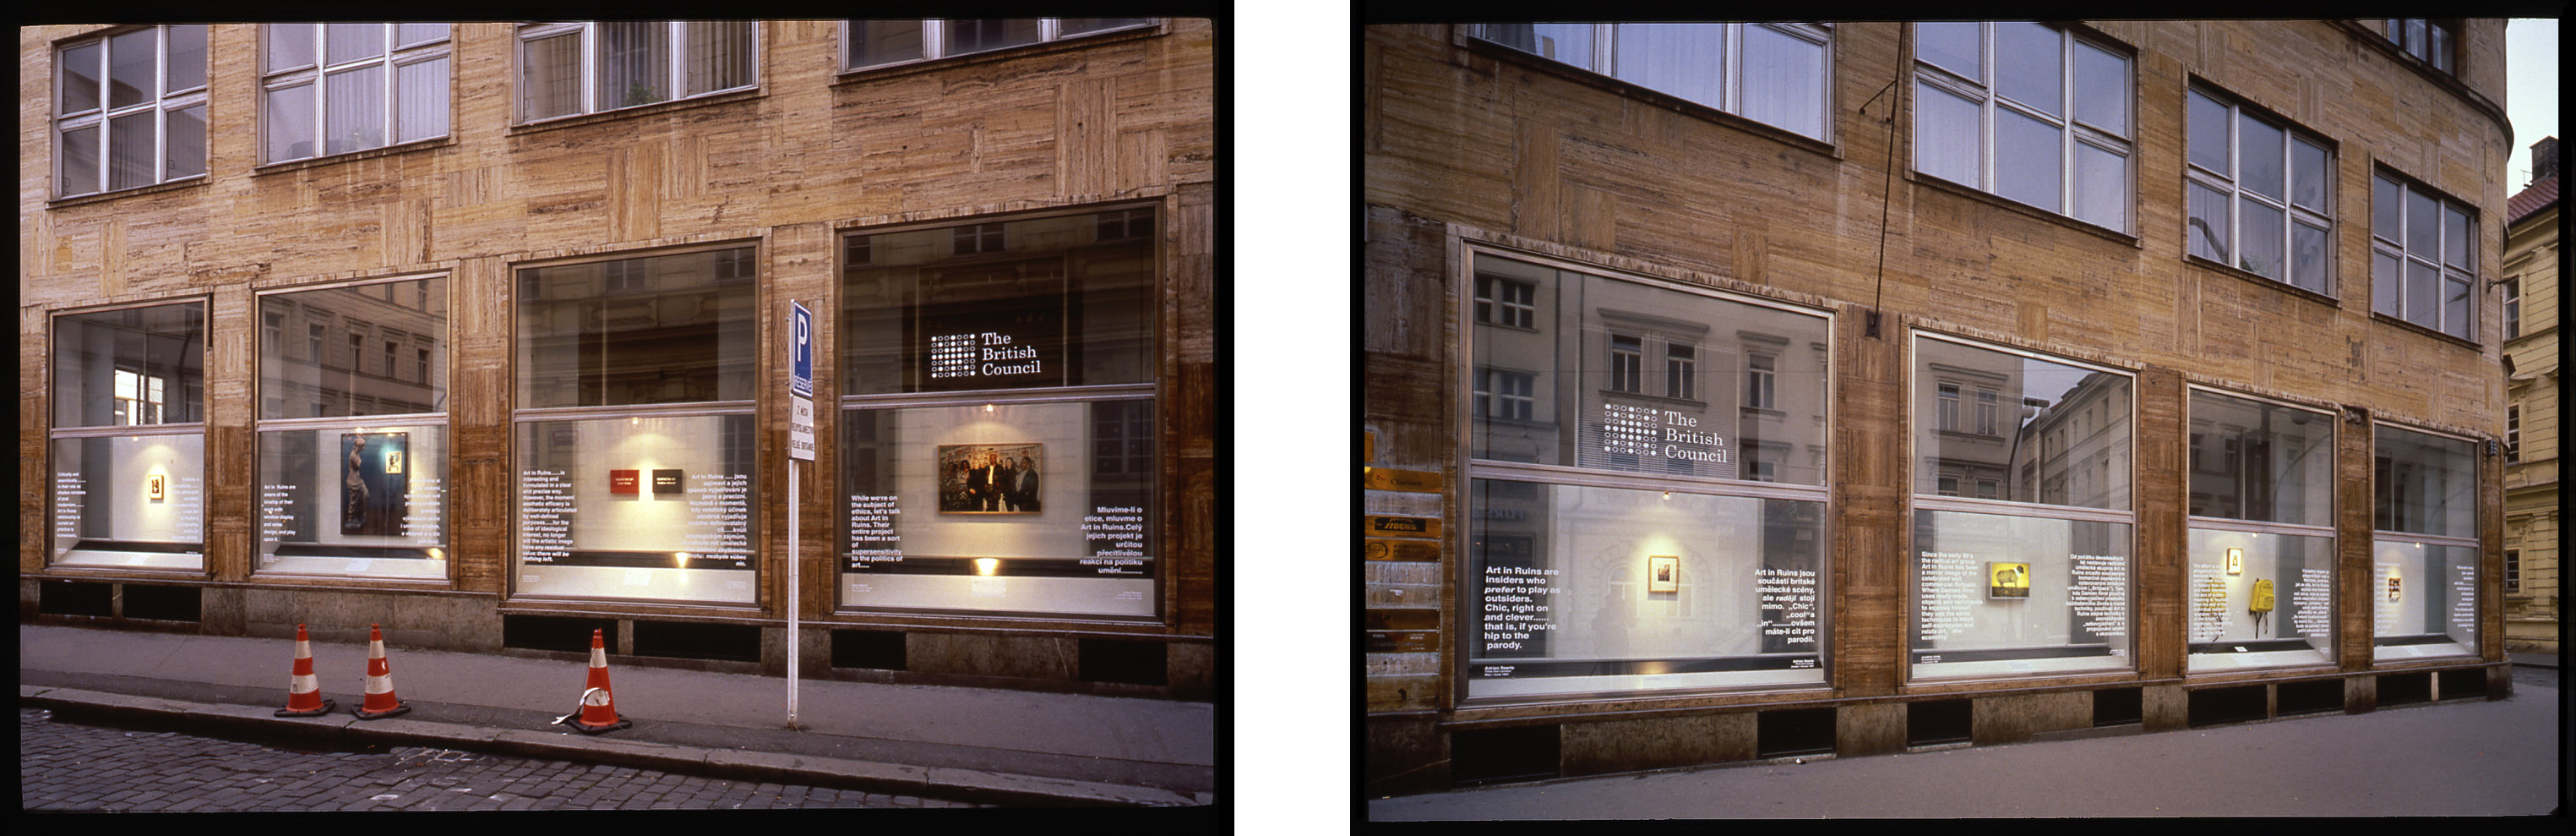 Double-Take Street Views Windows Gallery Prague 2000